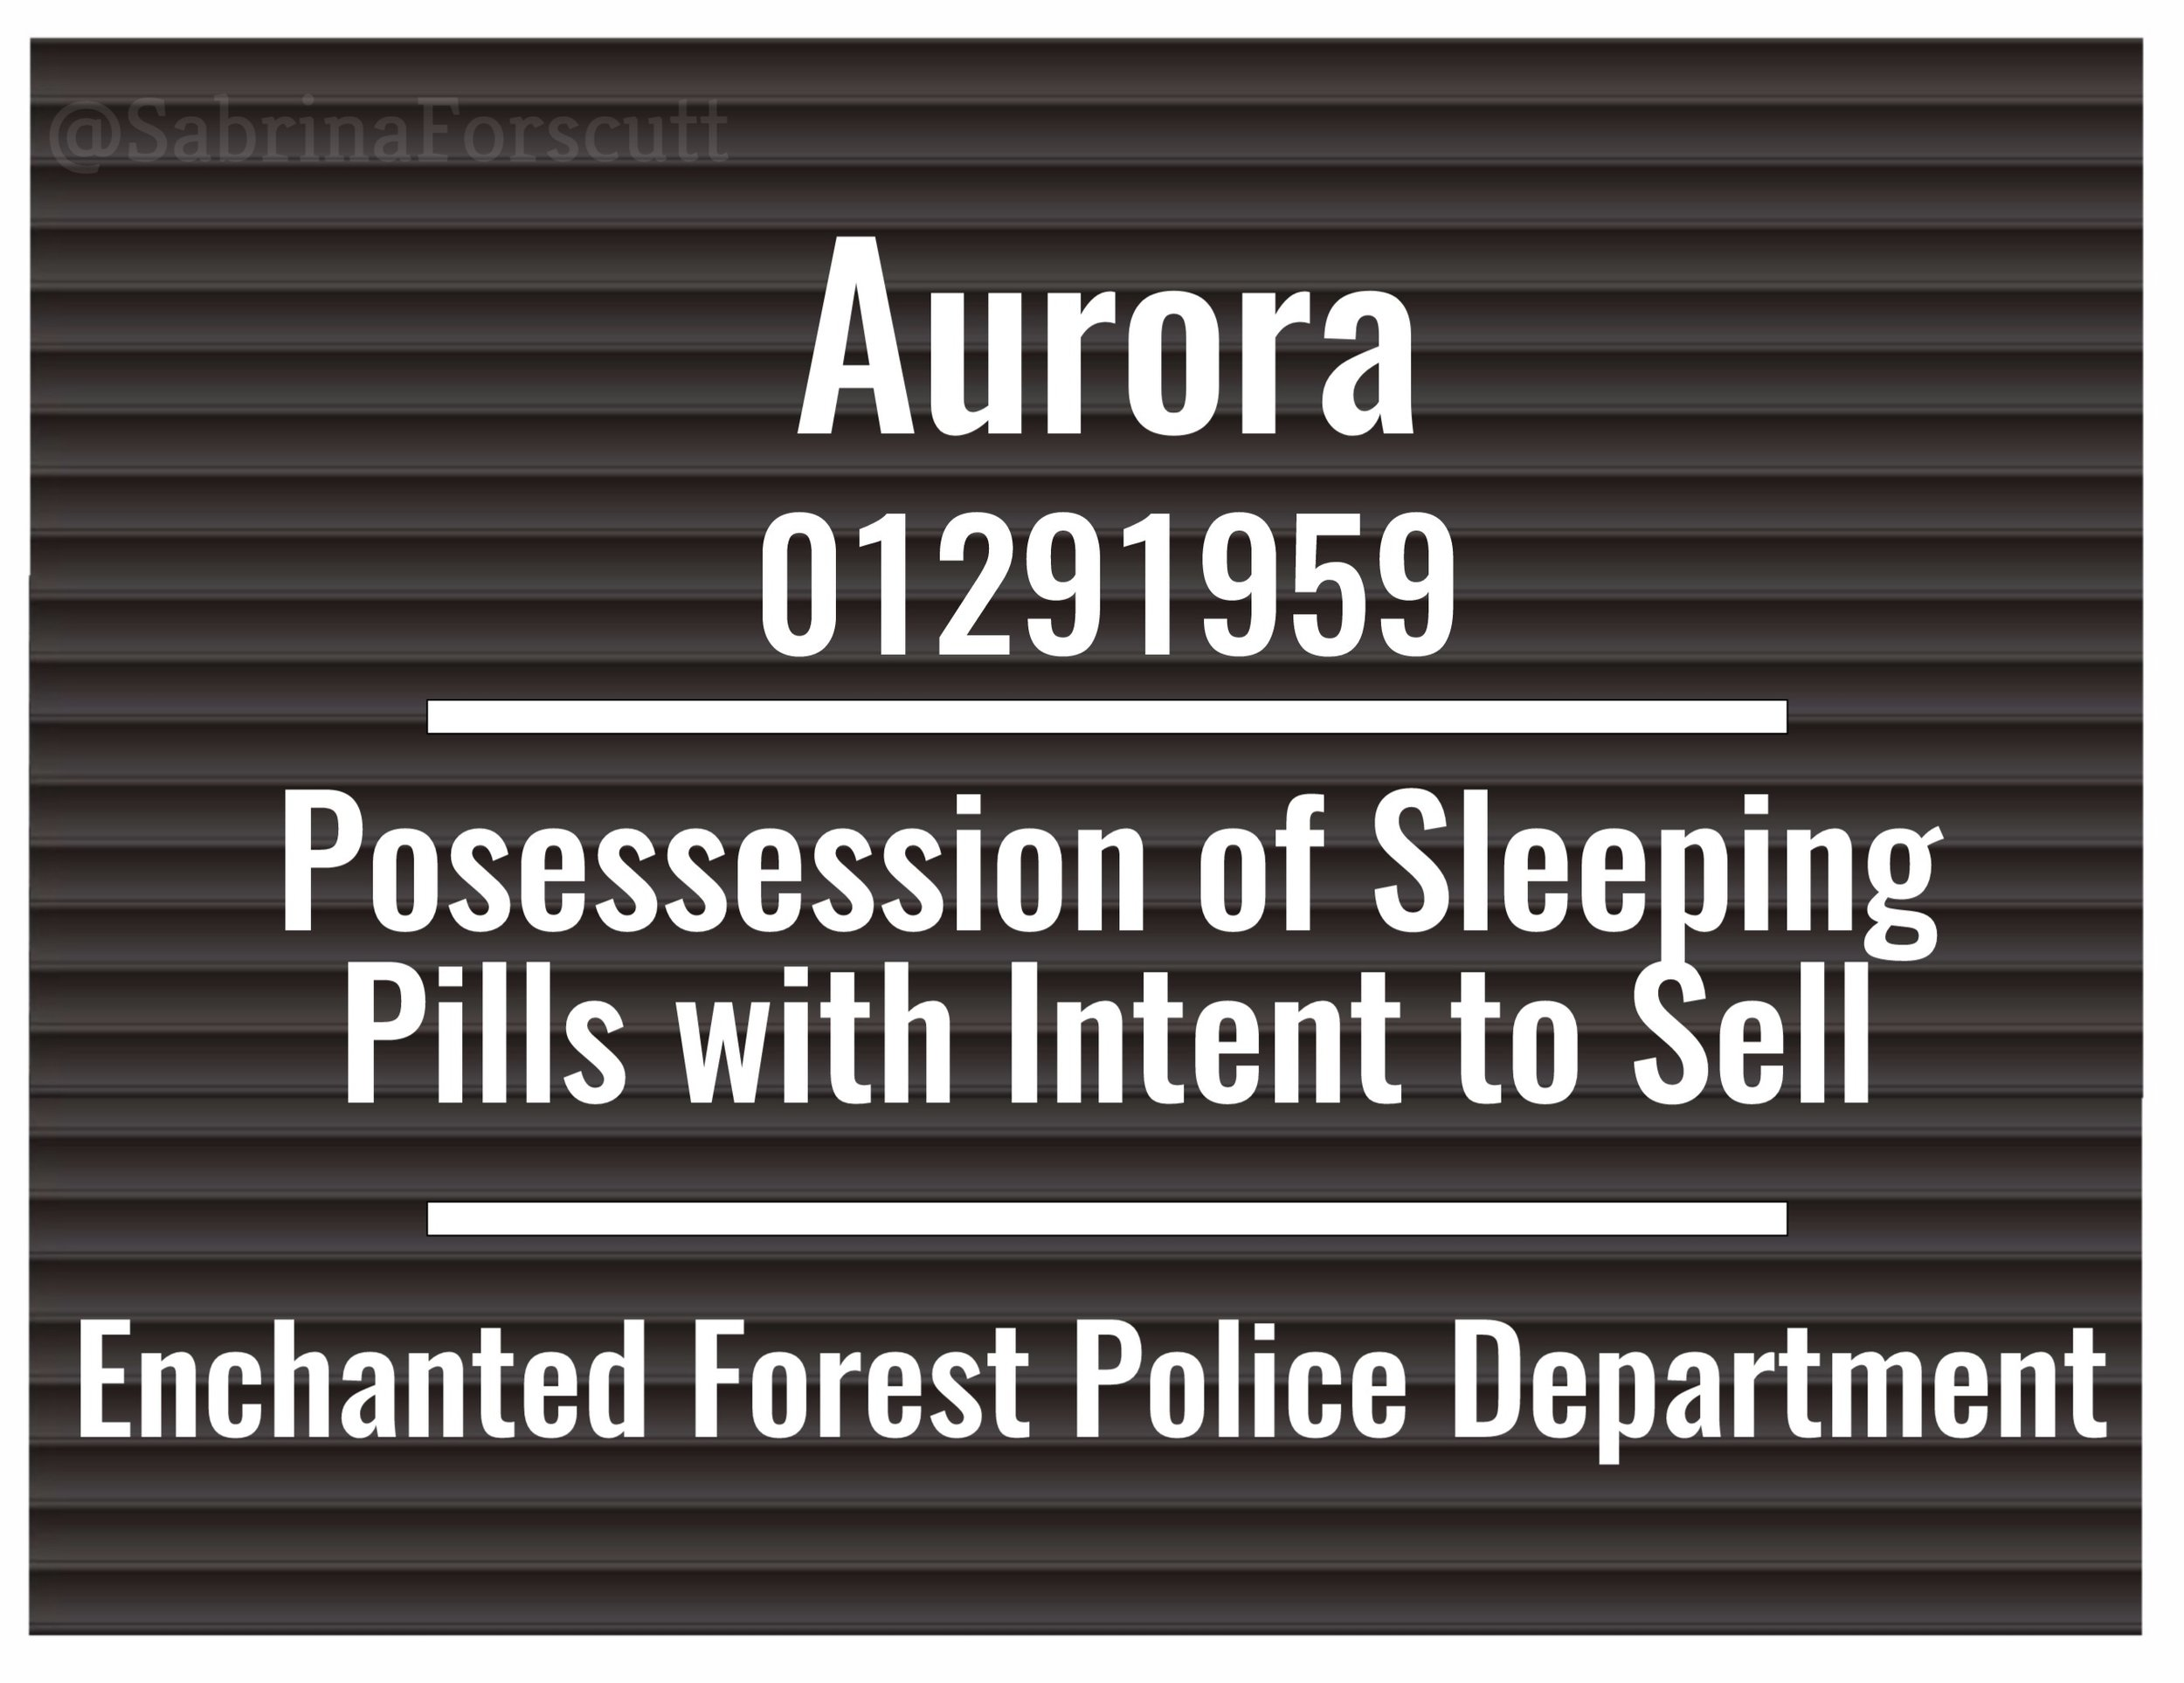 Aurora Mug Shot copy.jpg